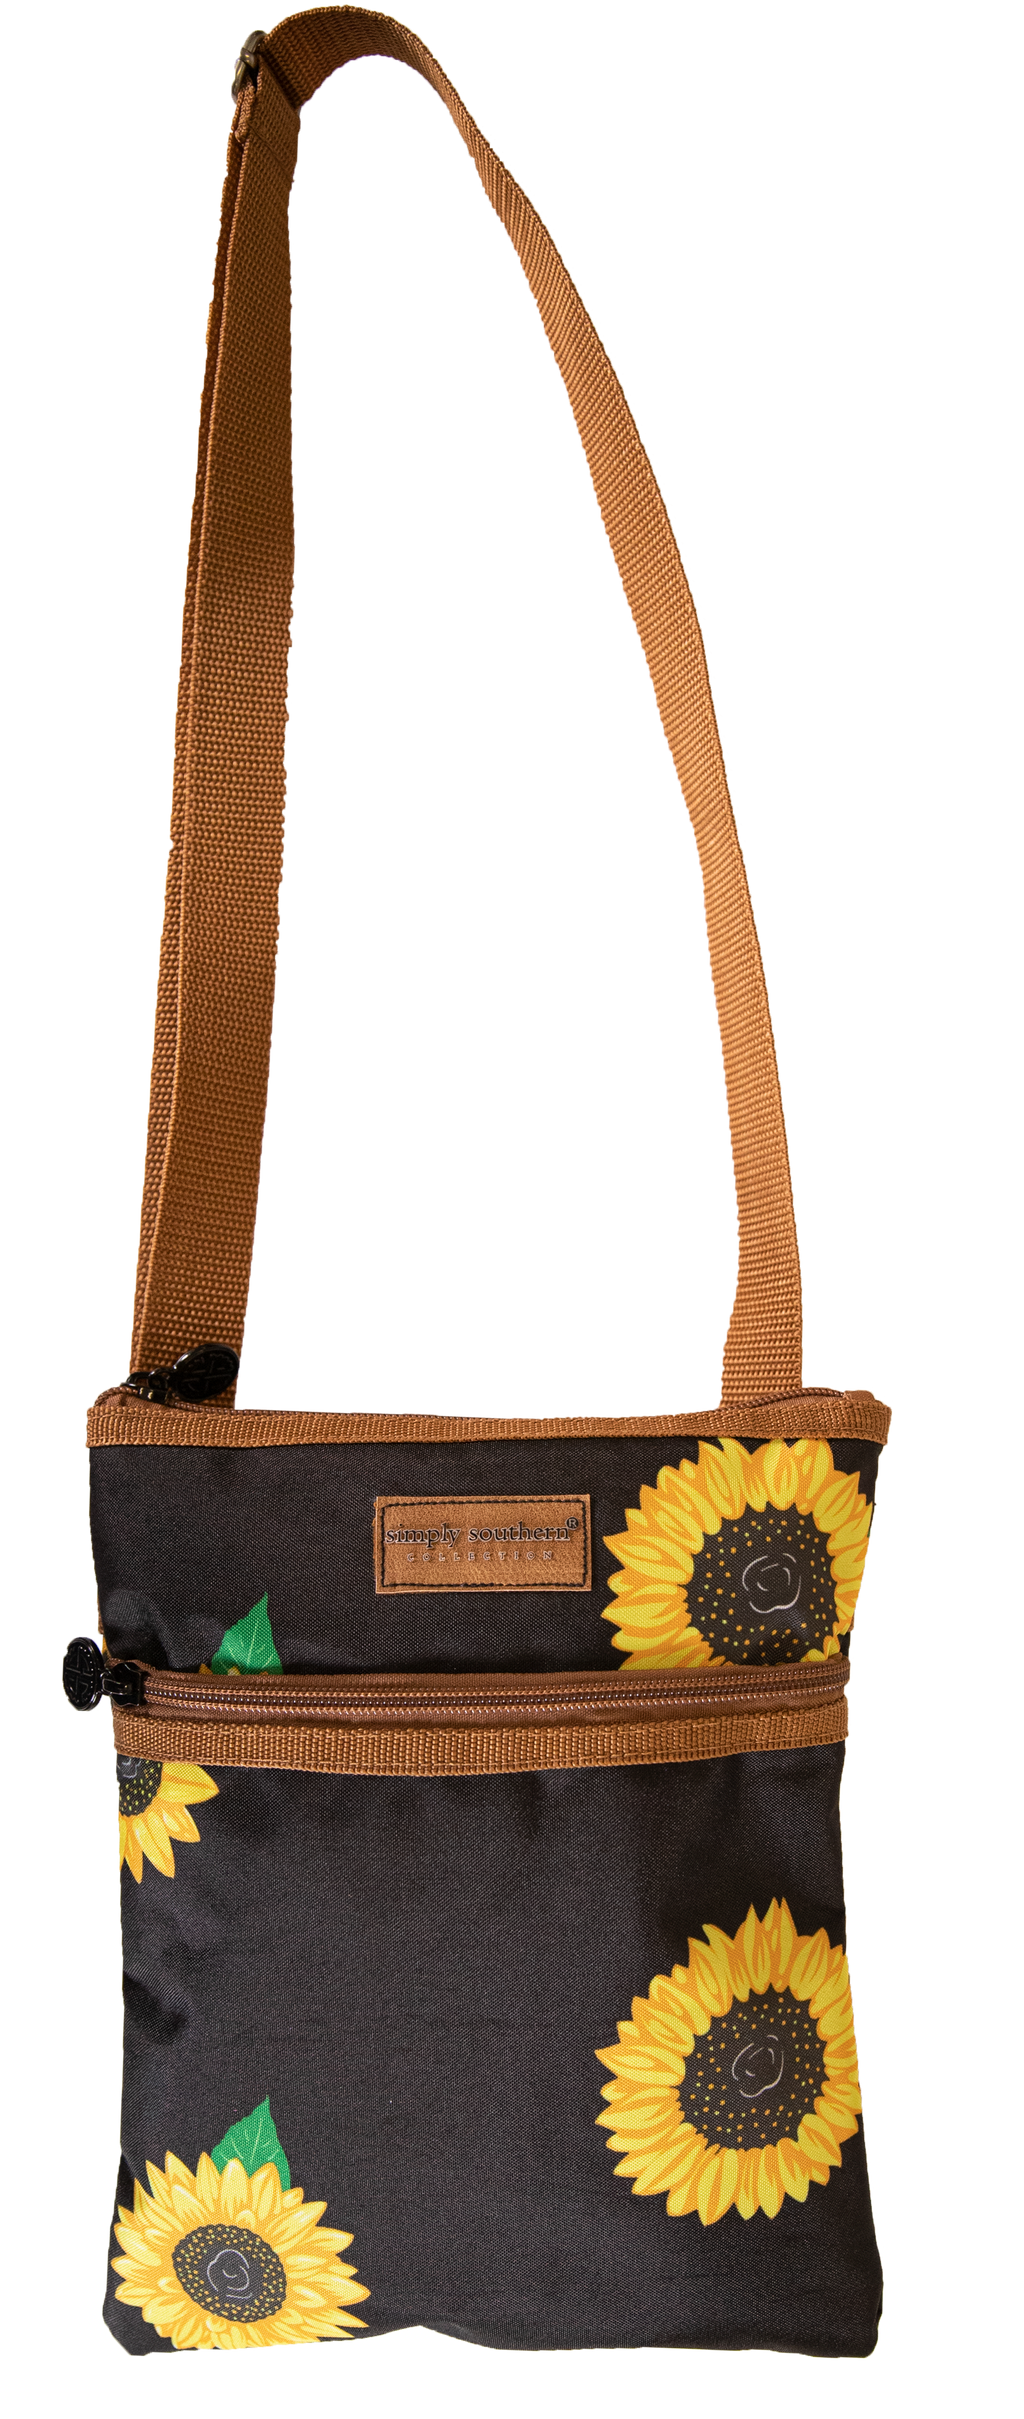 Simply Southern Sunflower Crossbody Bag